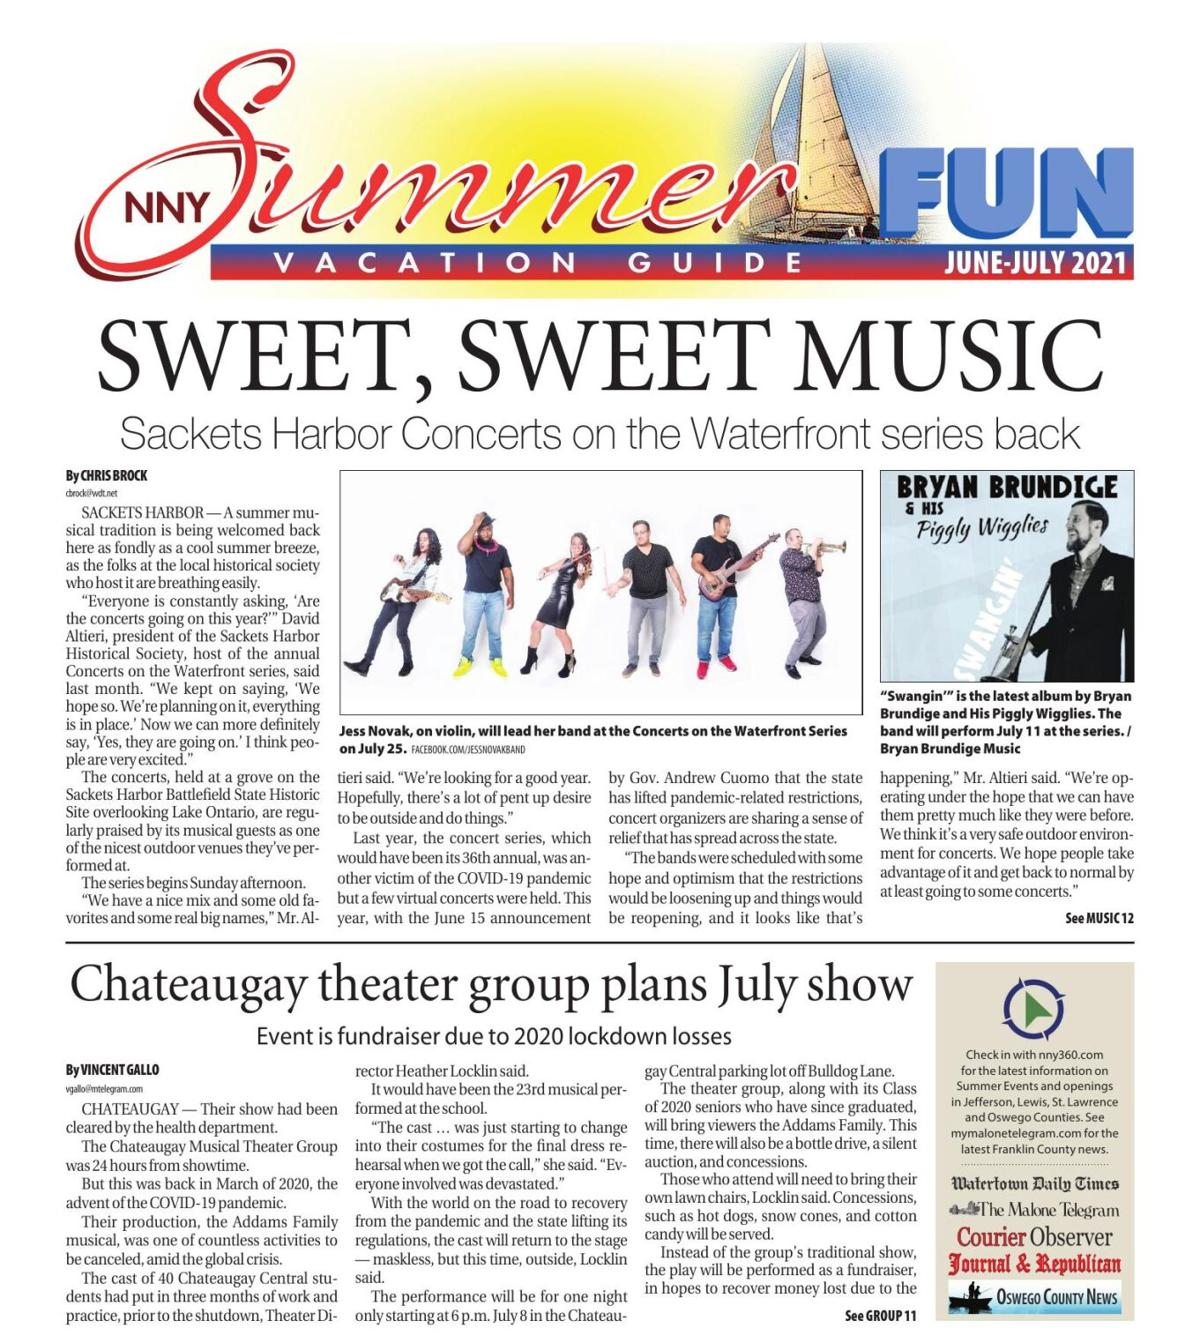 NNY Summer Fun Vacation Guide (June-July 2021)